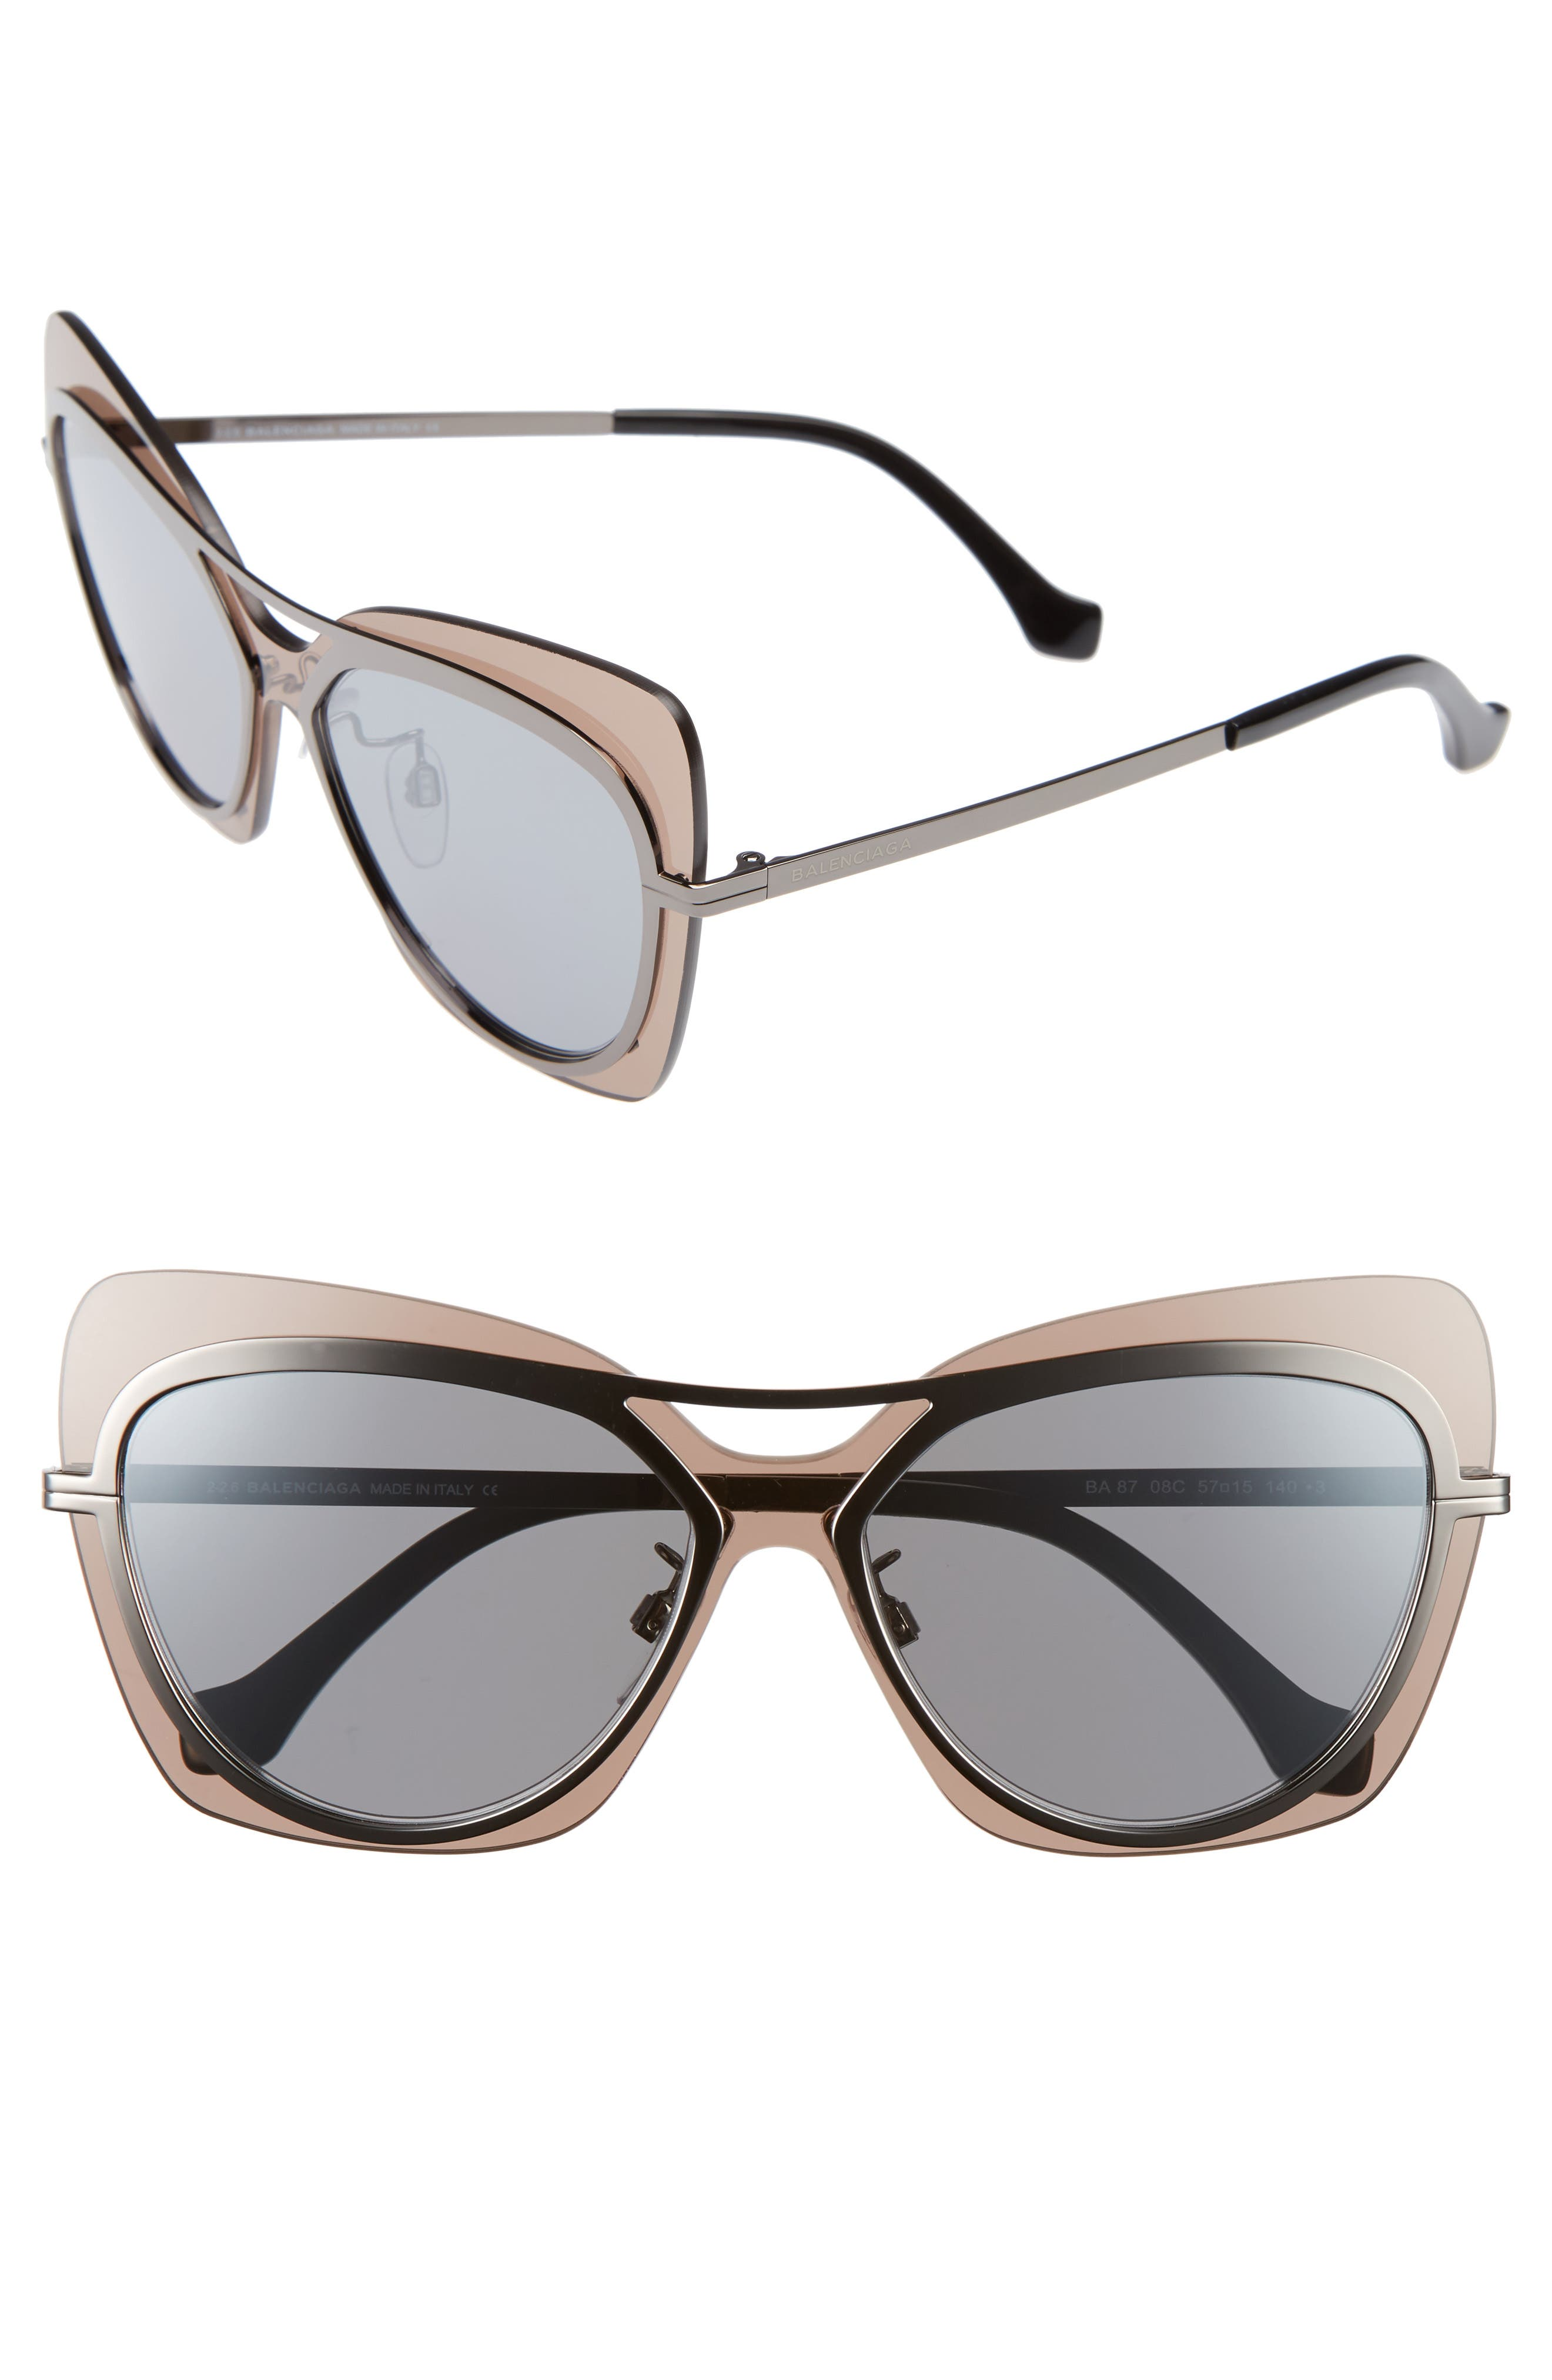 57mm Layered Butterfly Sunglasses,                         Main,                         color, 020